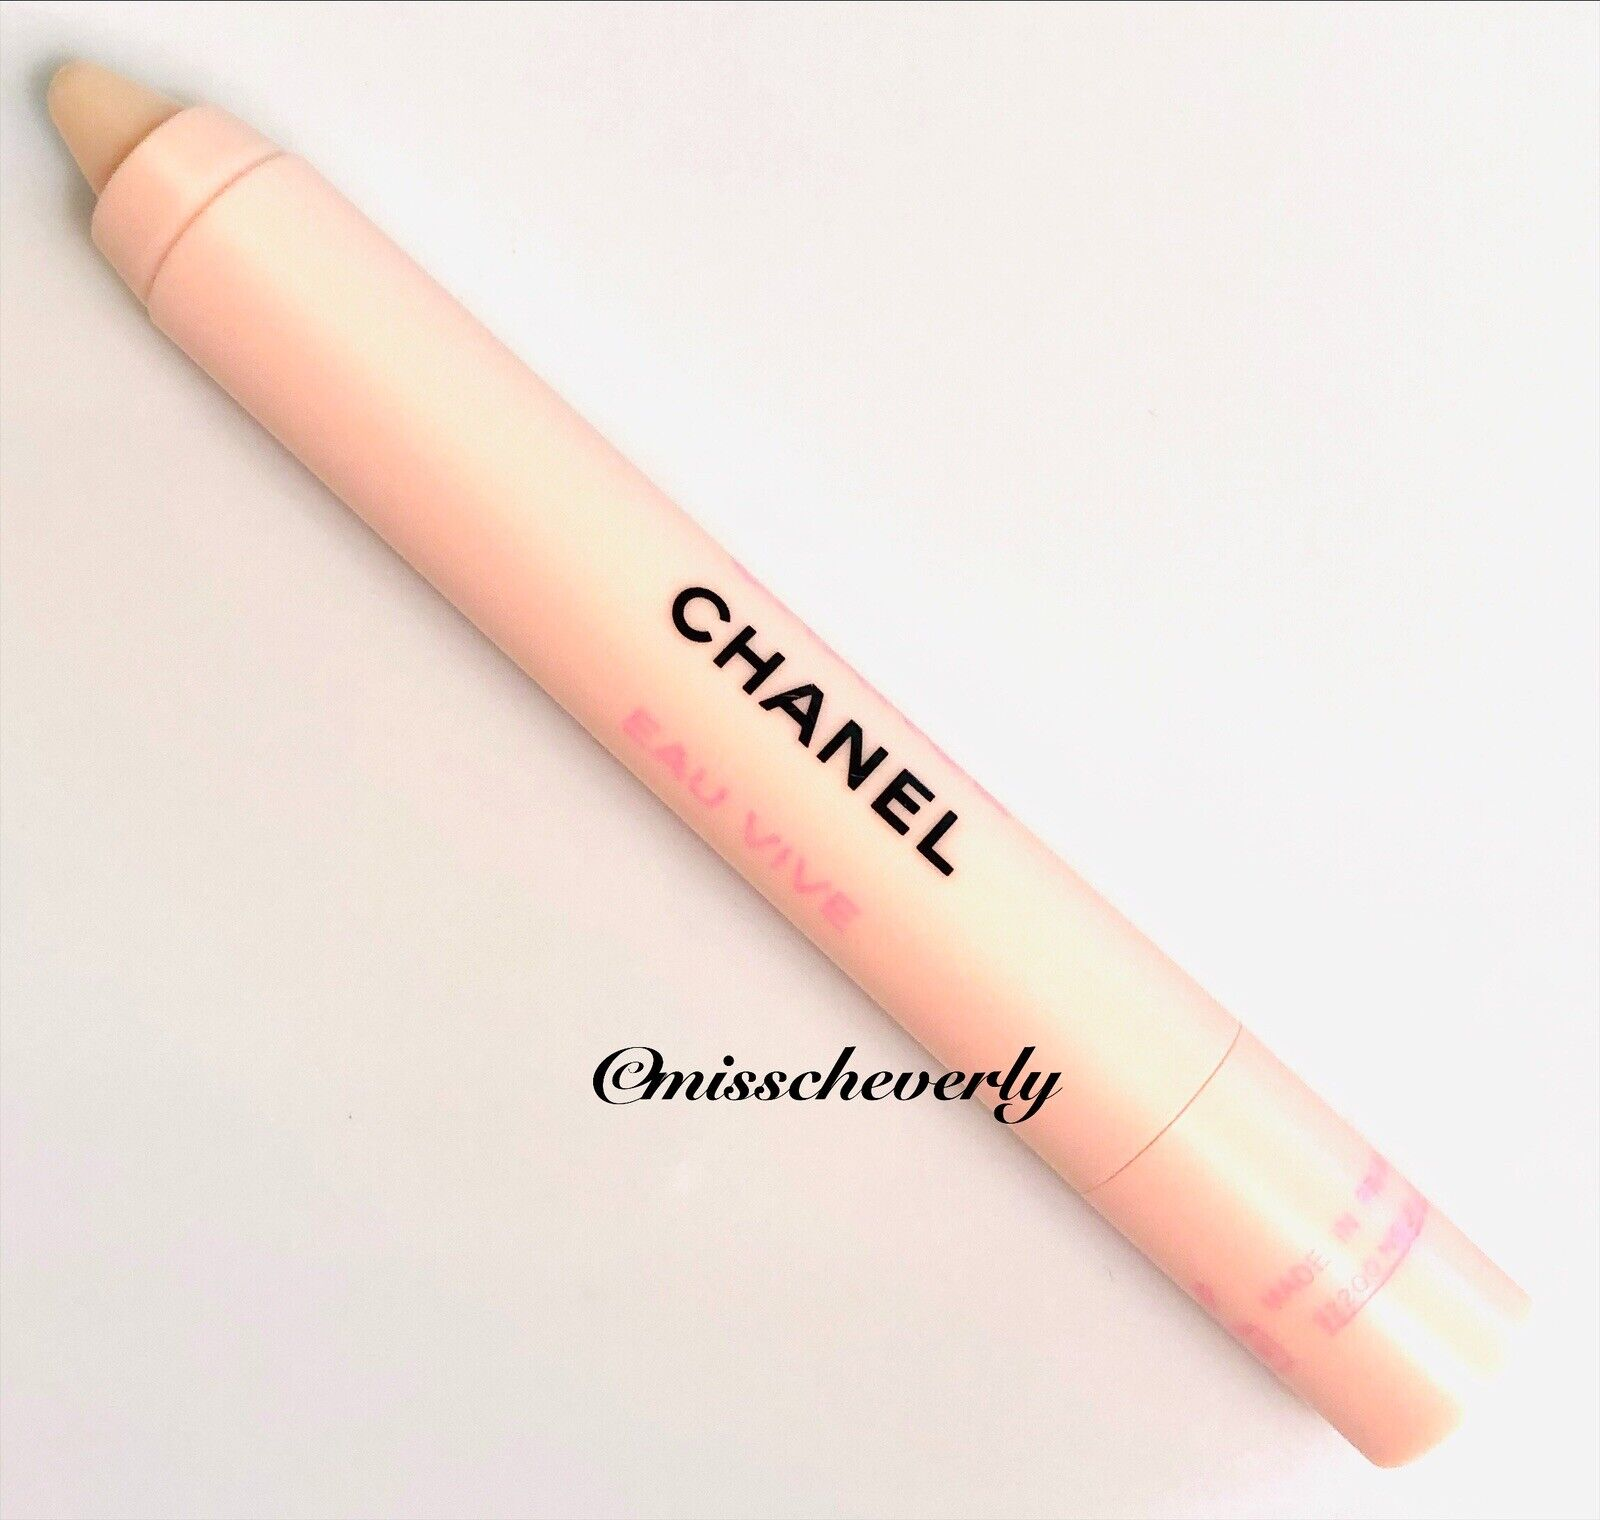 CHANEL Chance Eau Vive CRAYON Solid Fragrance AUTHENTIC NEW